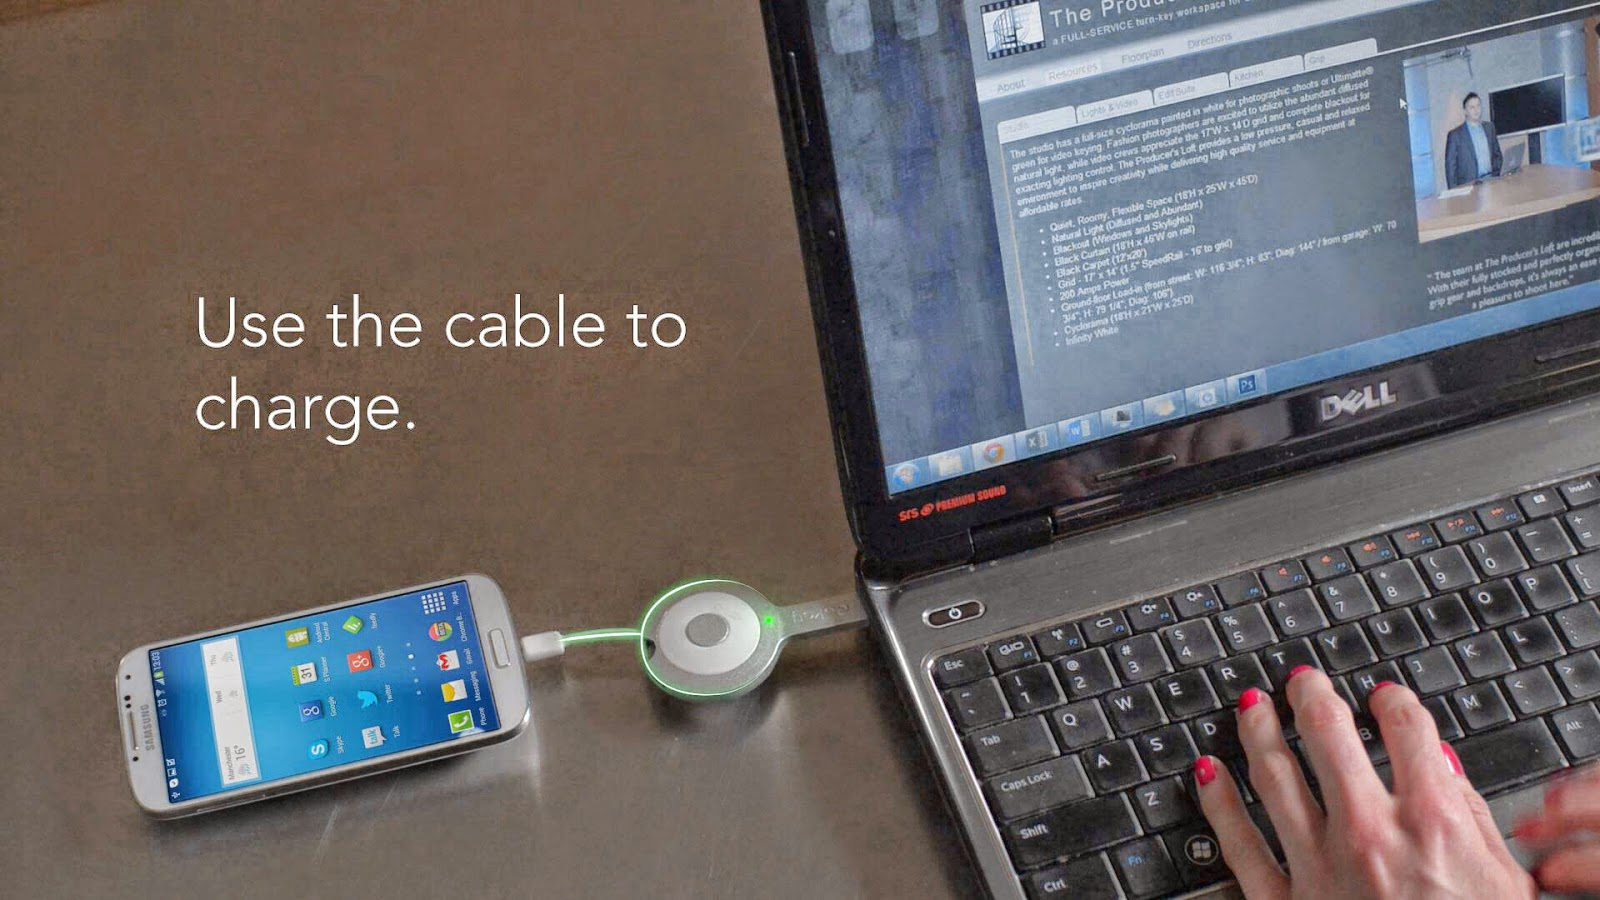 Gokey-All-on-your-key-ring-charger-cable-Locator-Memory